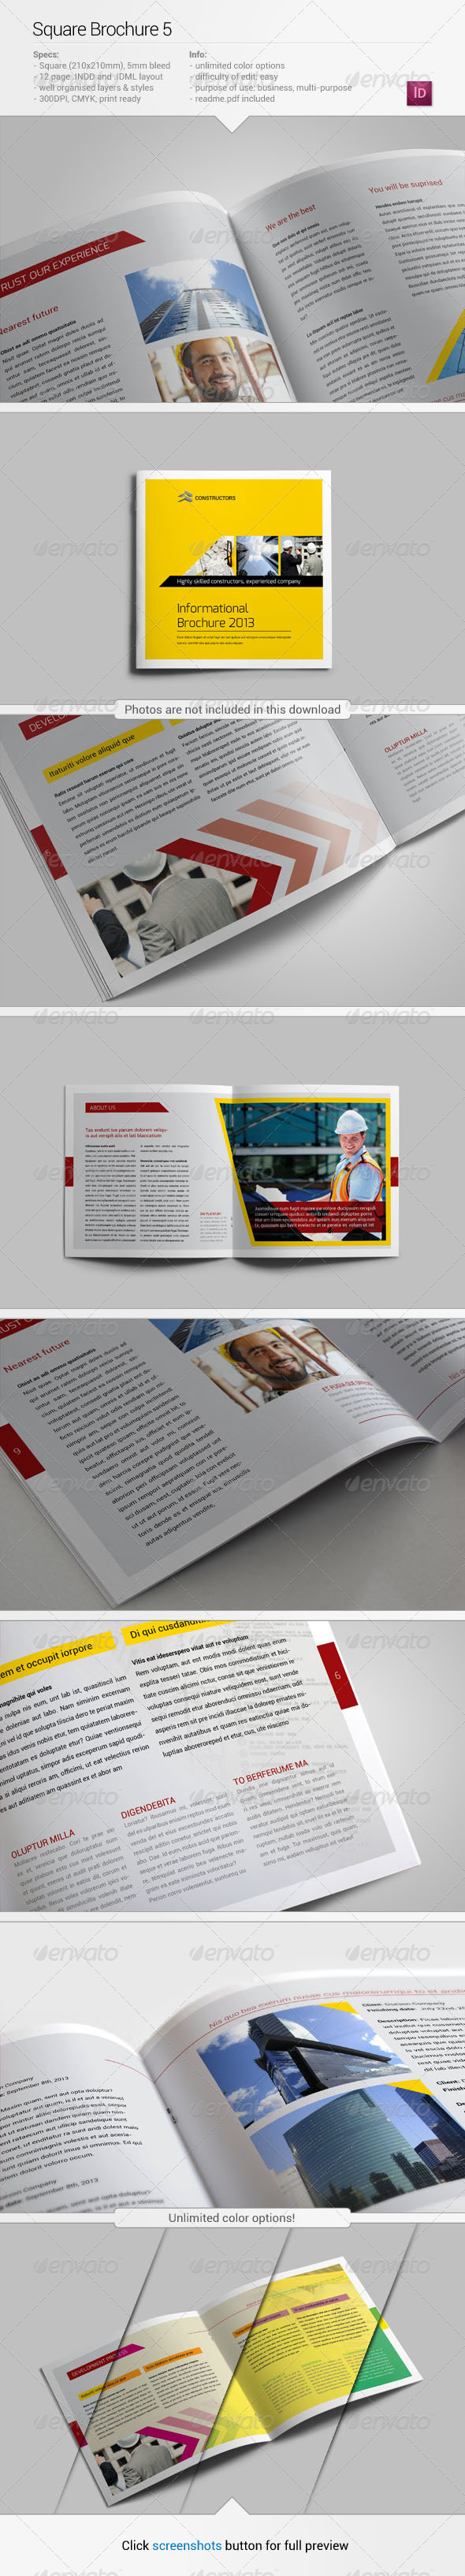 GraphicRiver Square Brochure 5 5414773